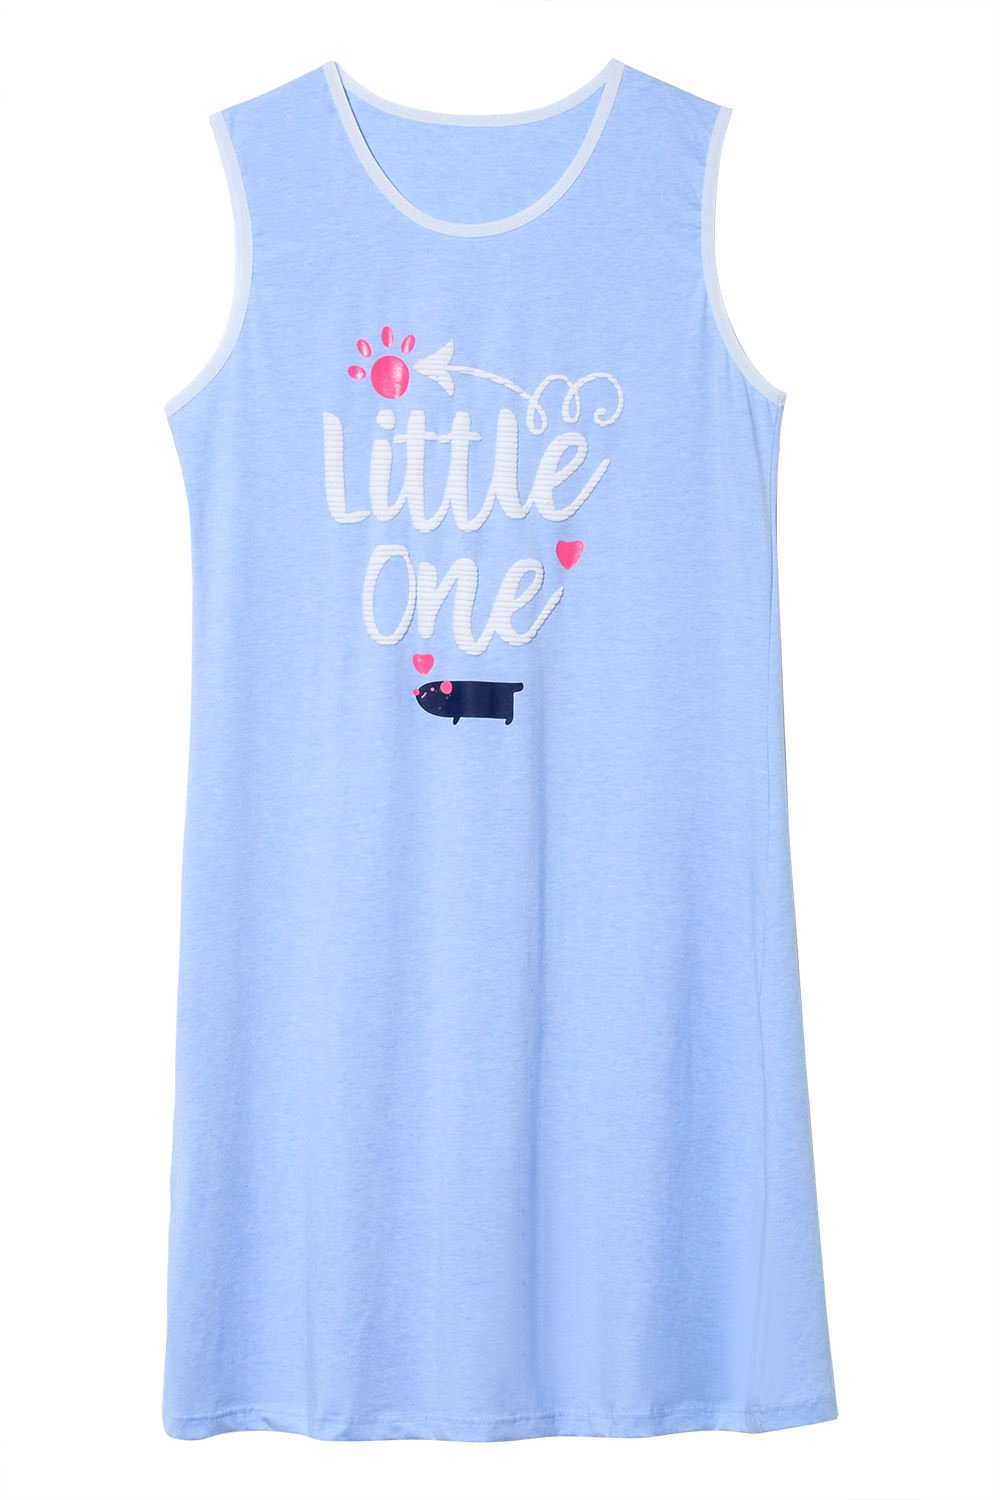 Jashe Big Girls 95% Colored Cotton Nightgowns Sleeveless Pajama Sleepwear for Tween Girls